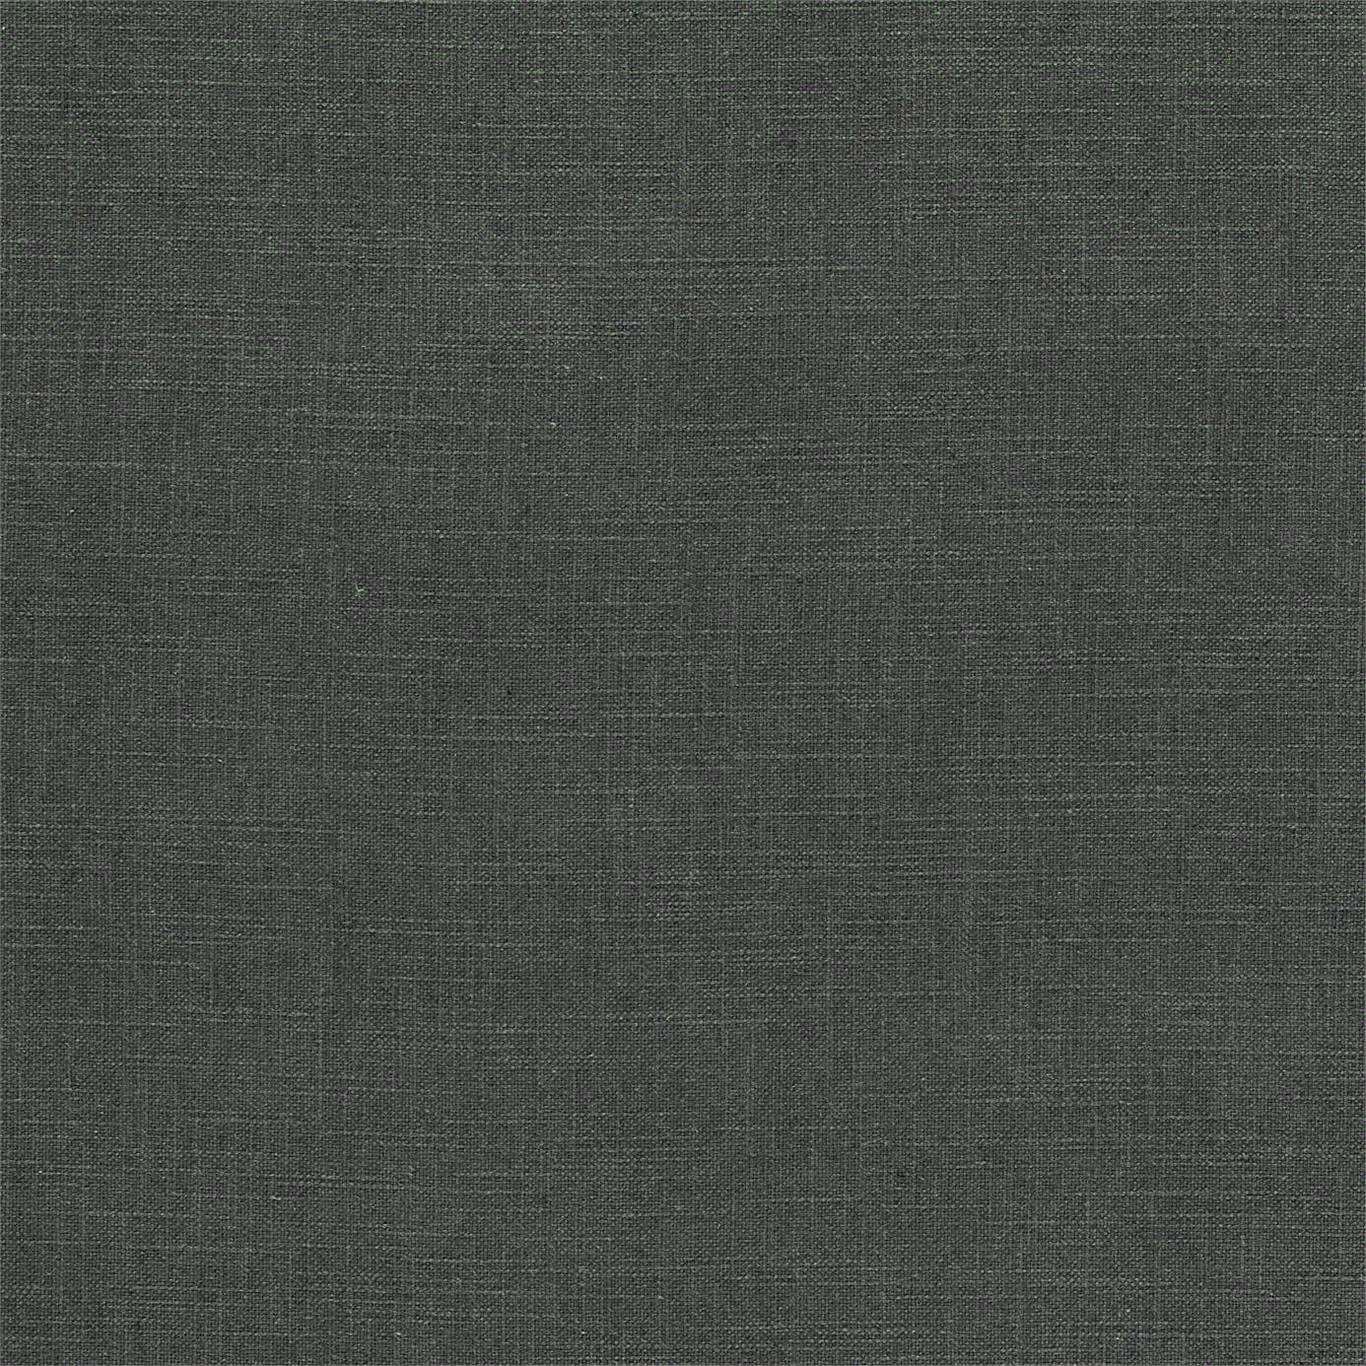 DTUC237129 Collection - Tuscany II Weaves Fabric